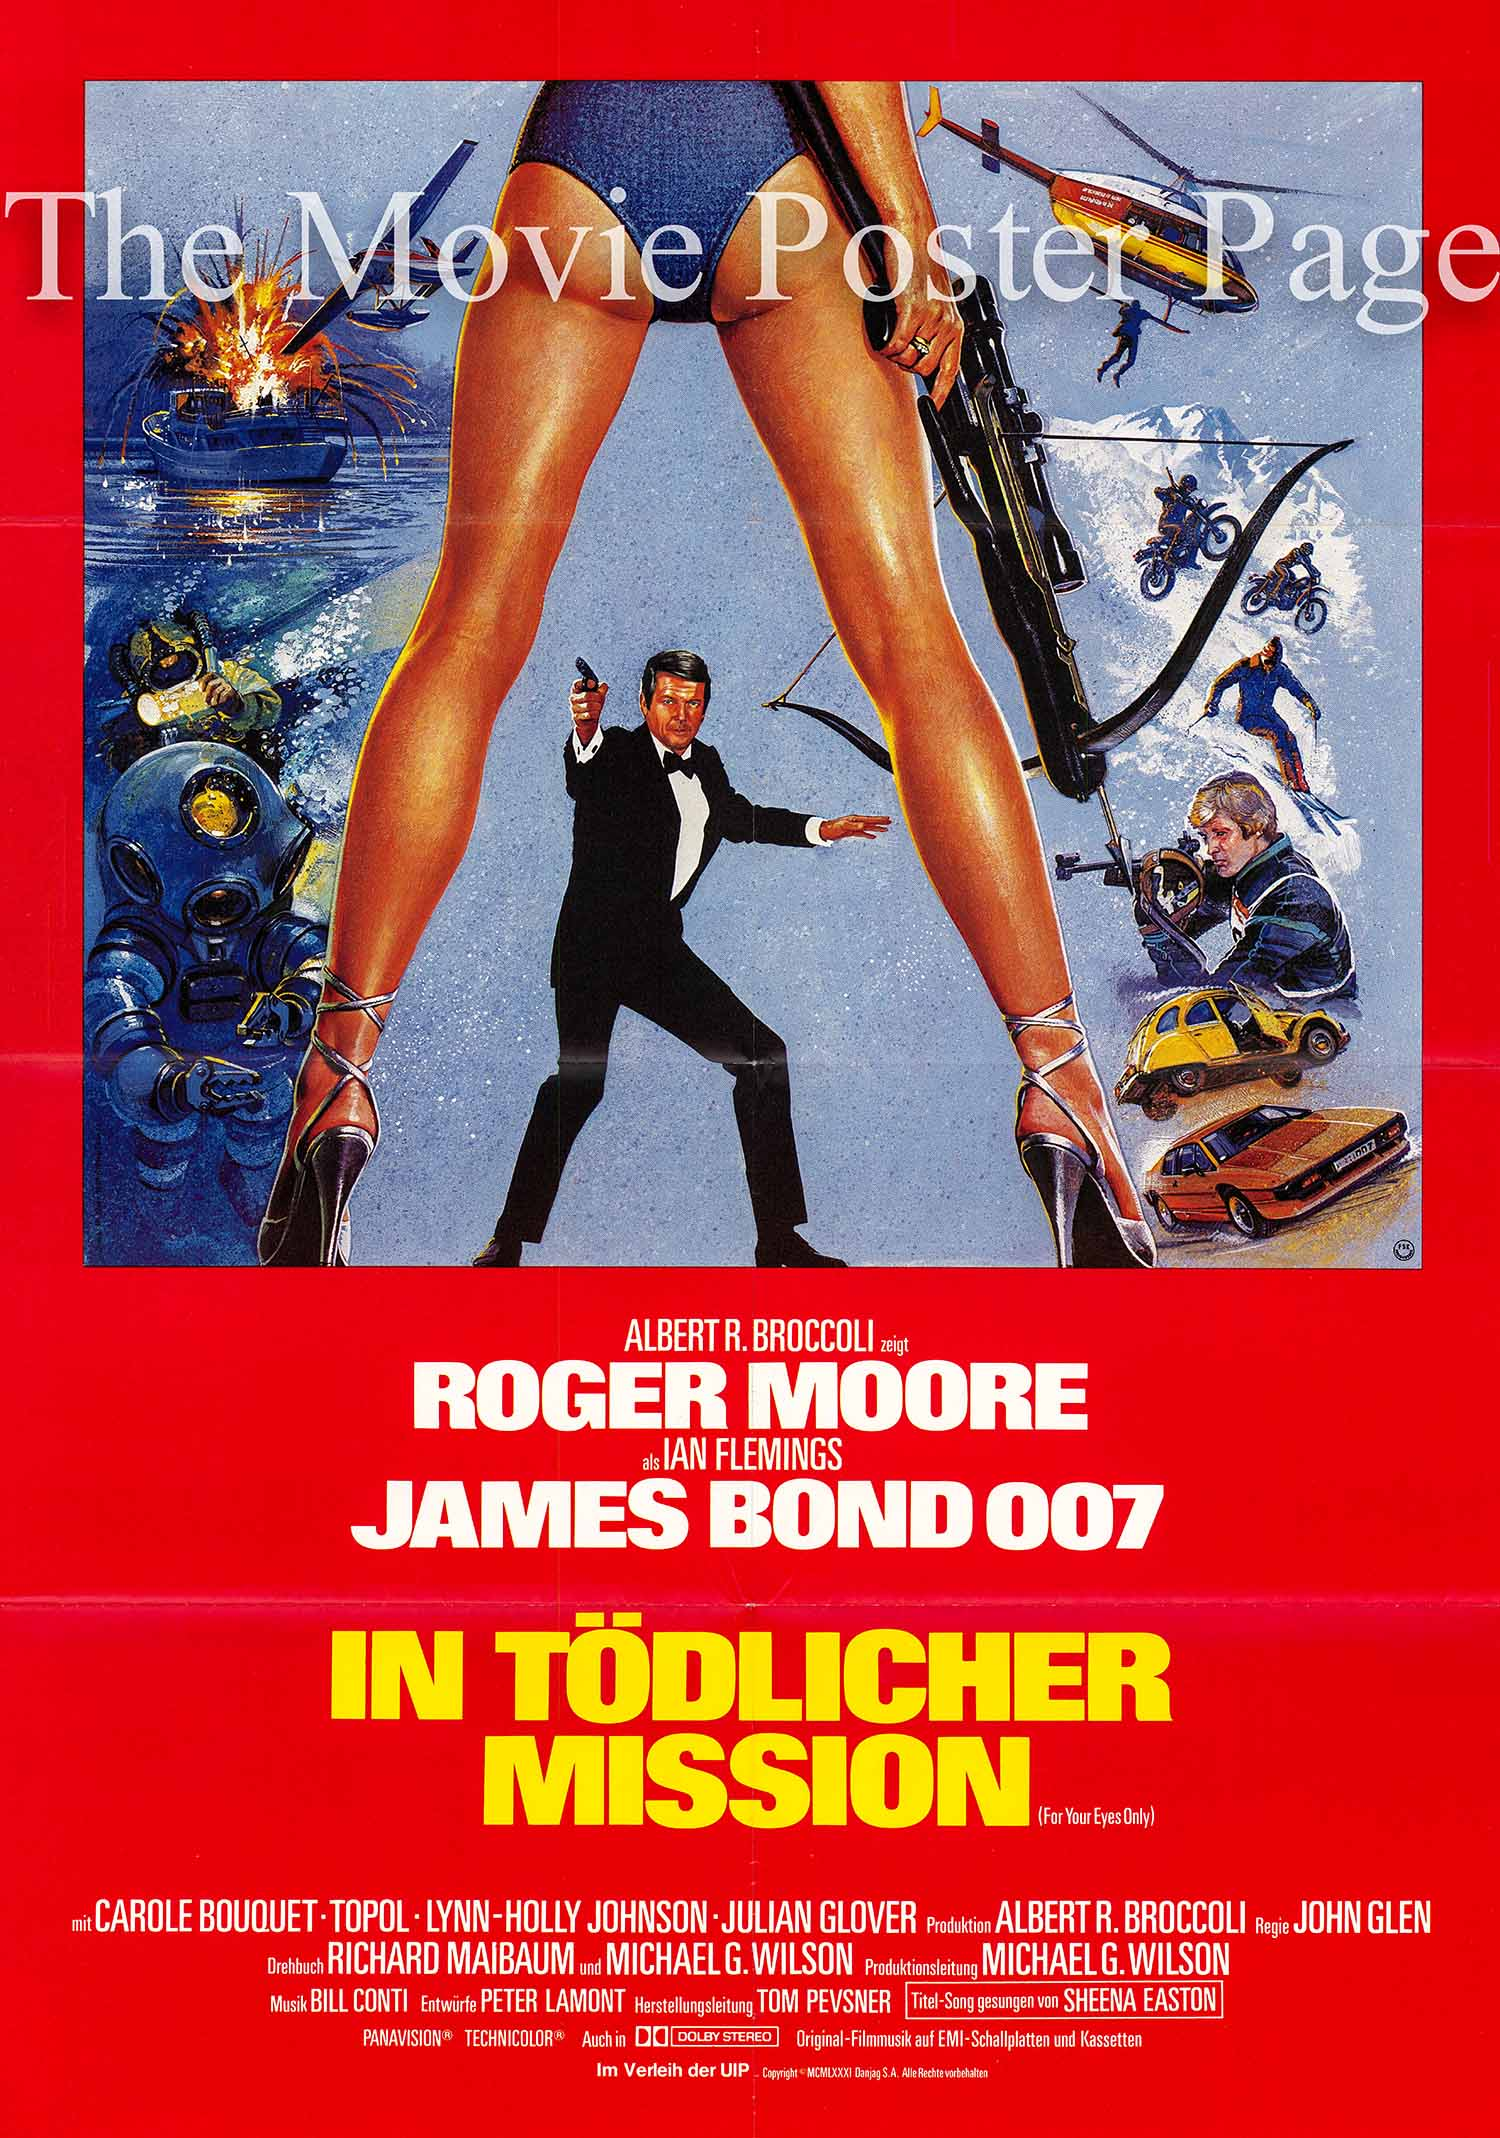 Pictured is a German promotional poster for the 1981 John Glen film For Your Eyes Only starring Roger Moore as James